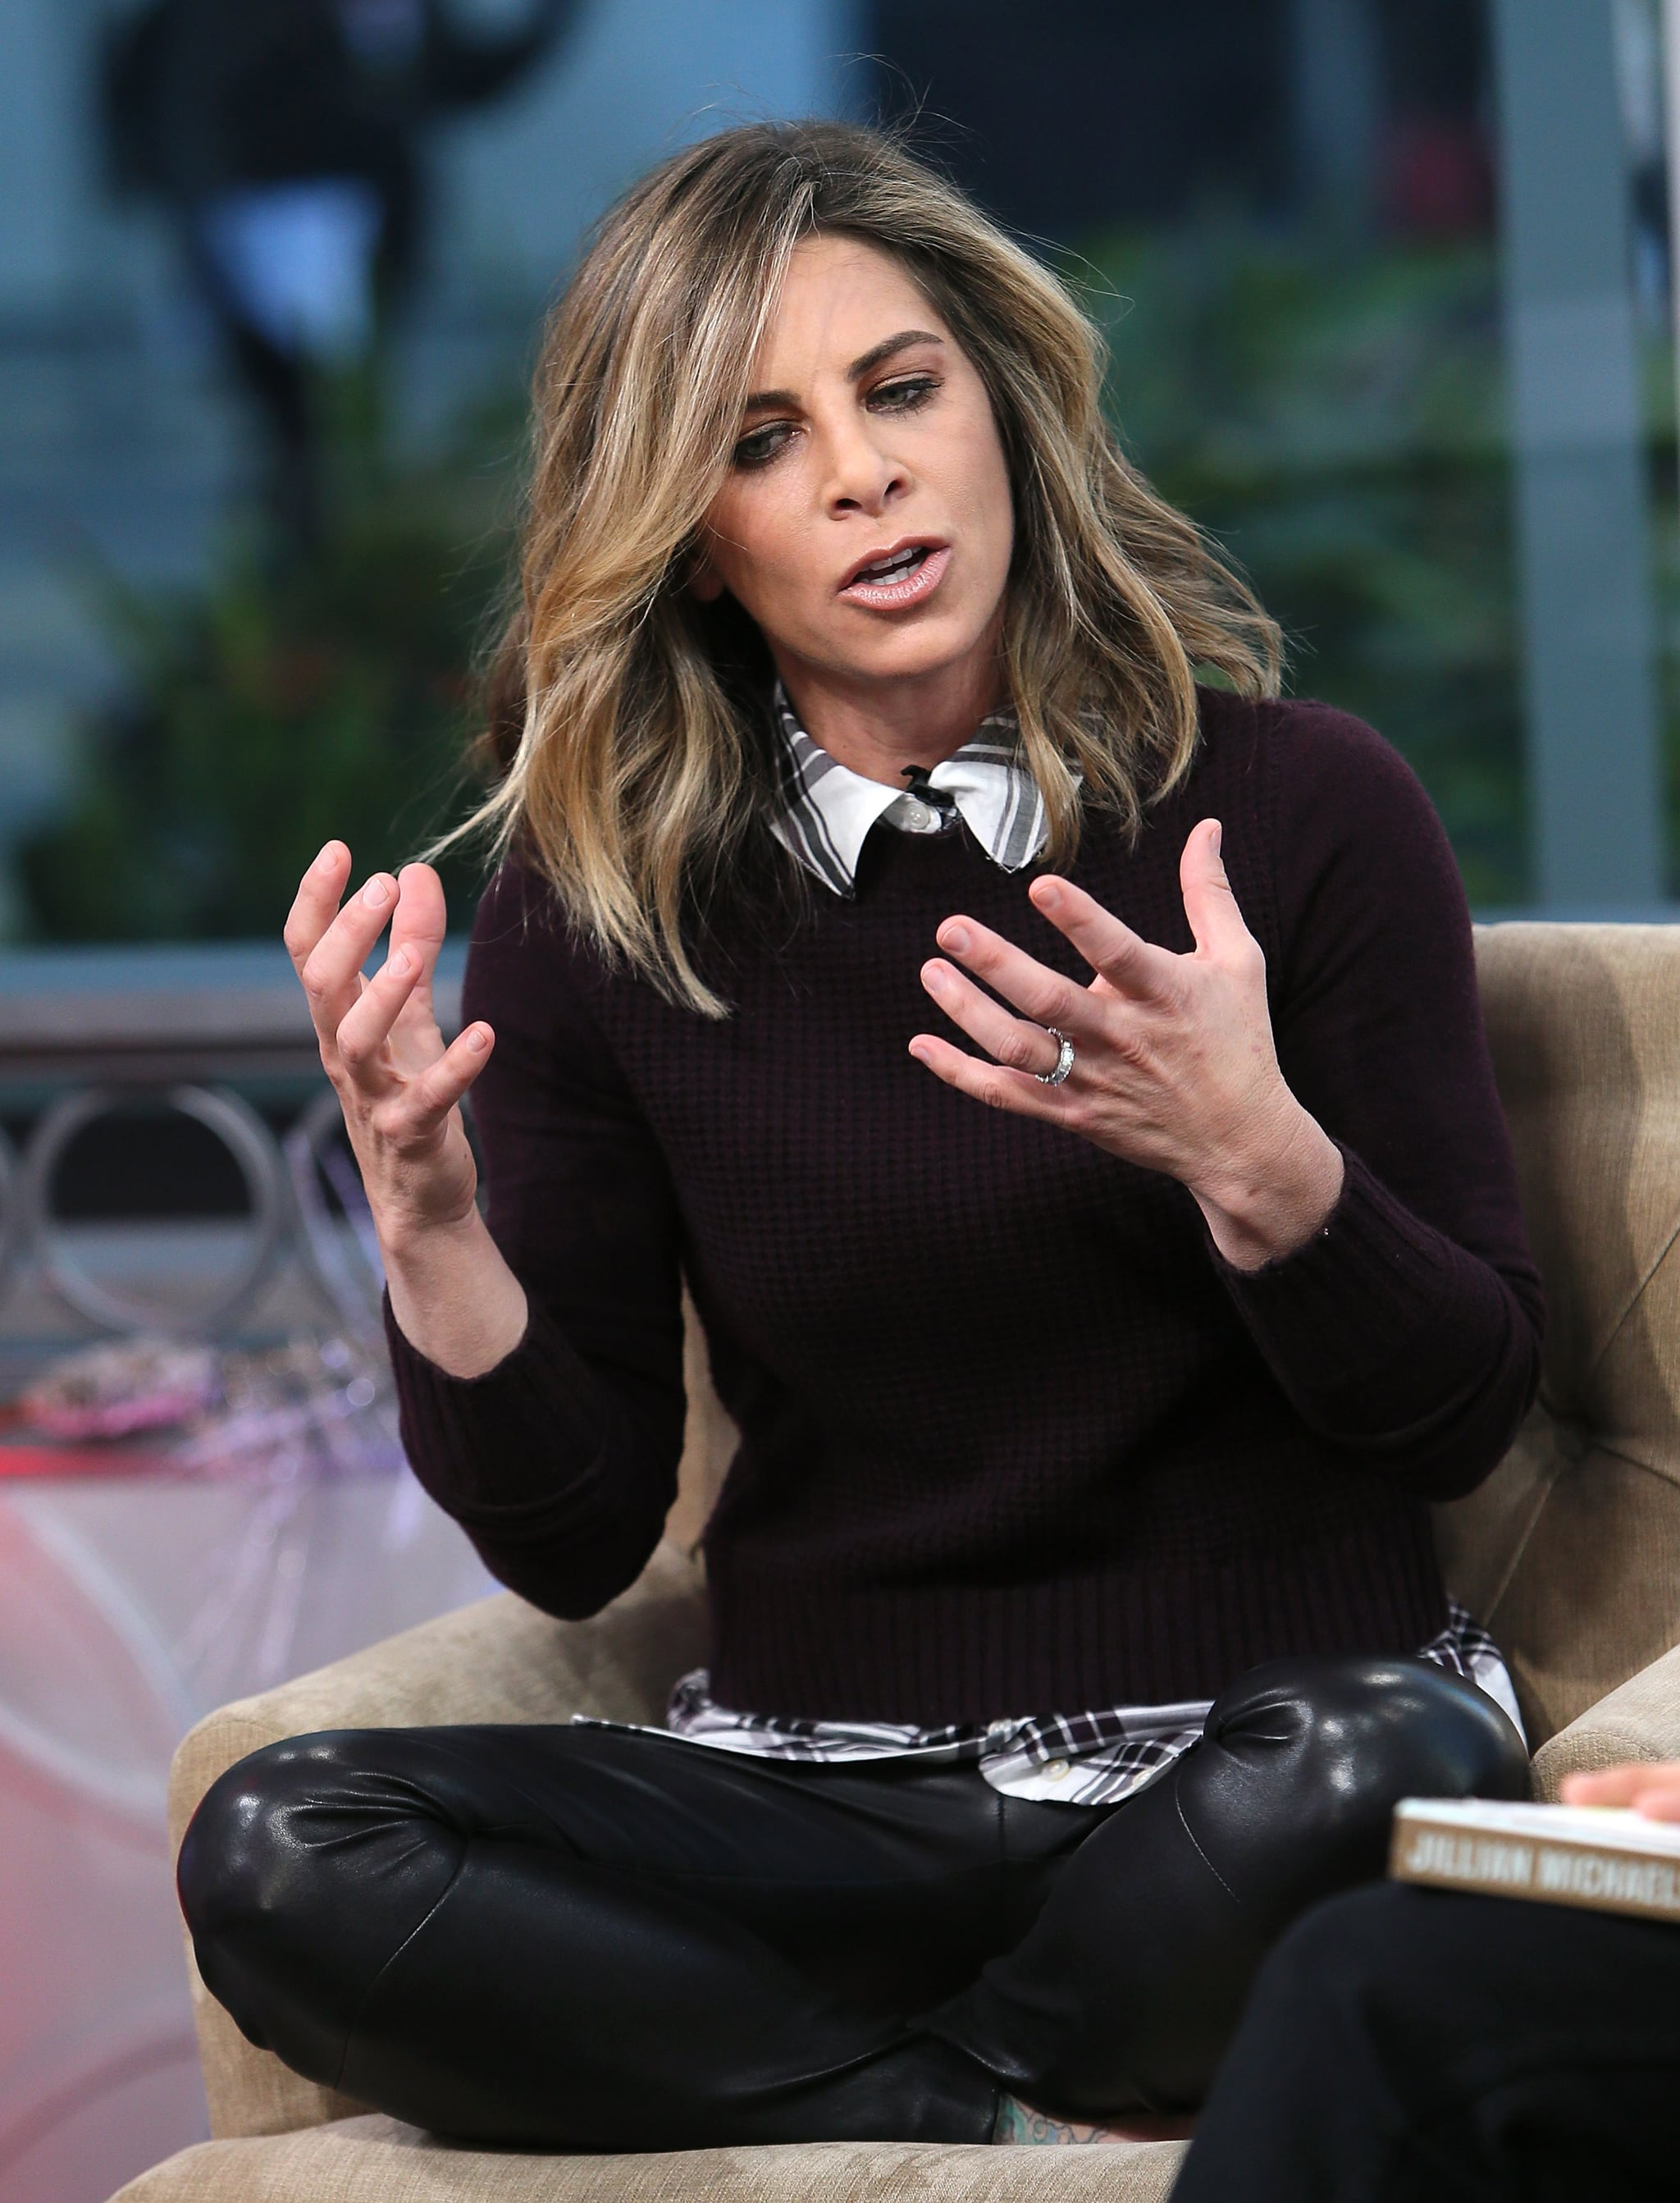 ICloud Jillian Michaels nudes (52 foto and video), Pussy, Leaked, Feet, see through 2006